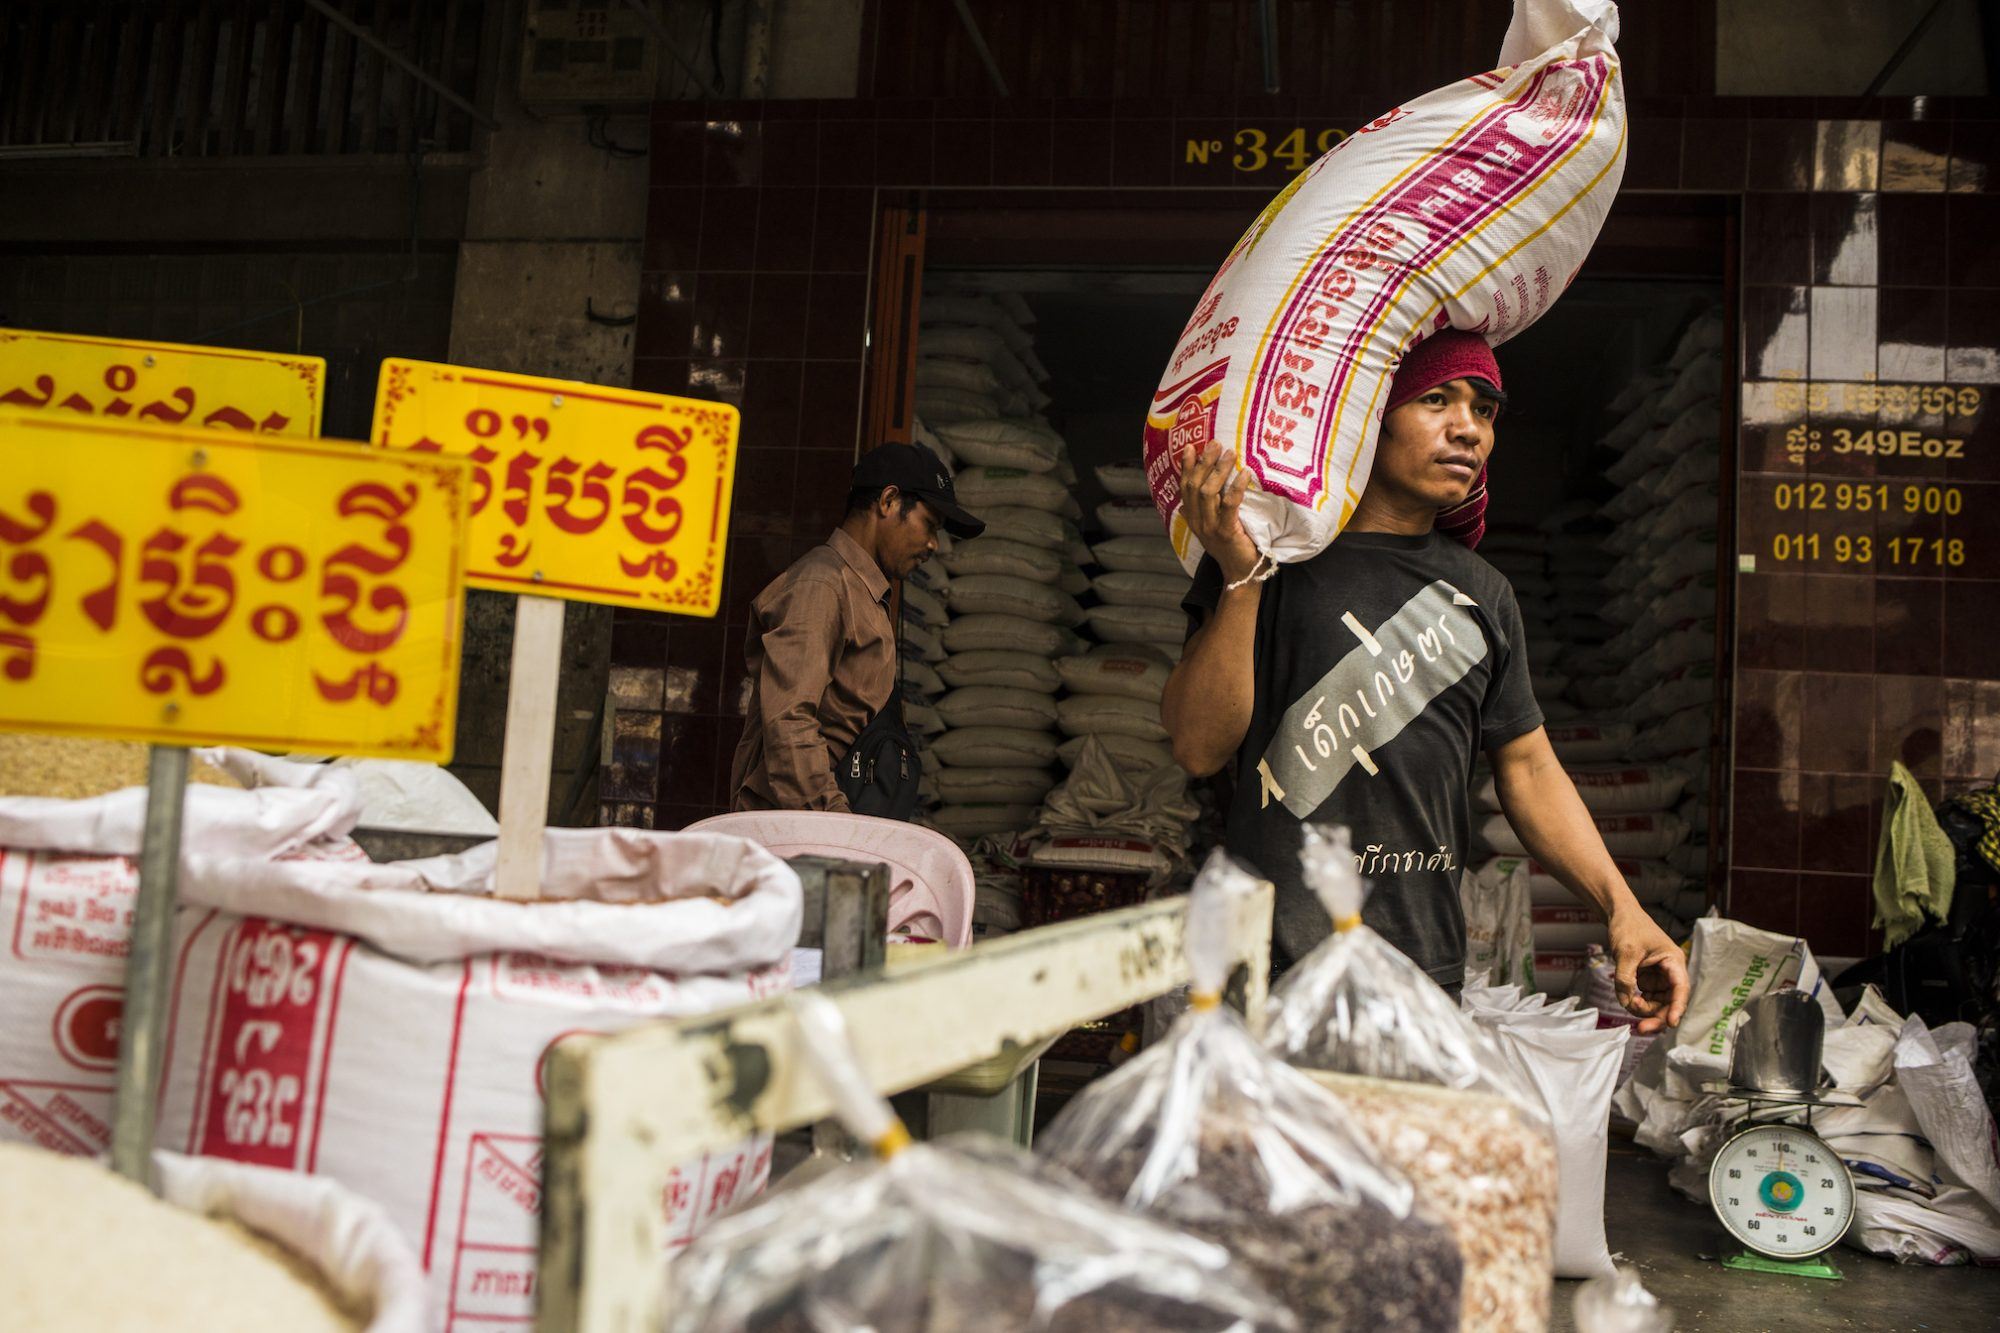 A man in a head scarf carries a huge bag of rice on his shoulder in a colorful rice market